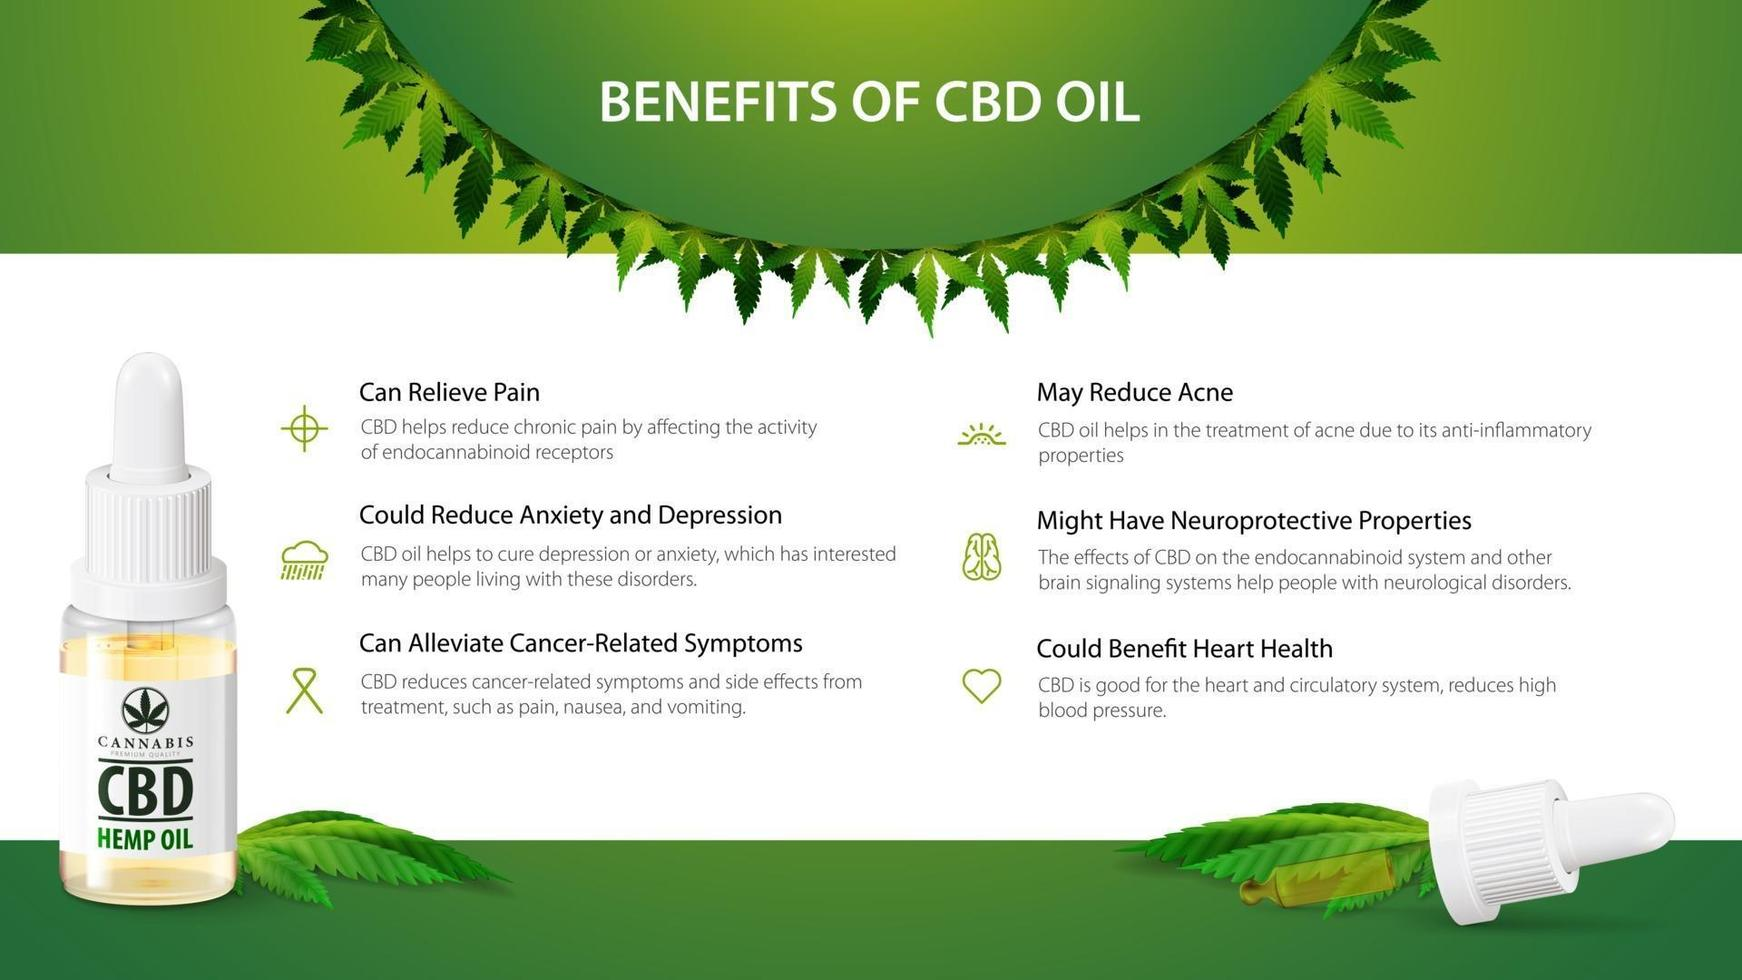 Medical Uses For Cbd Oil Benefits Of Use Cbd Oil Green And White Banner With Glass Bottle Of Cbd Oil Hemp Leaf And Pipette Download Free Vectors Clipart Graphics Vector